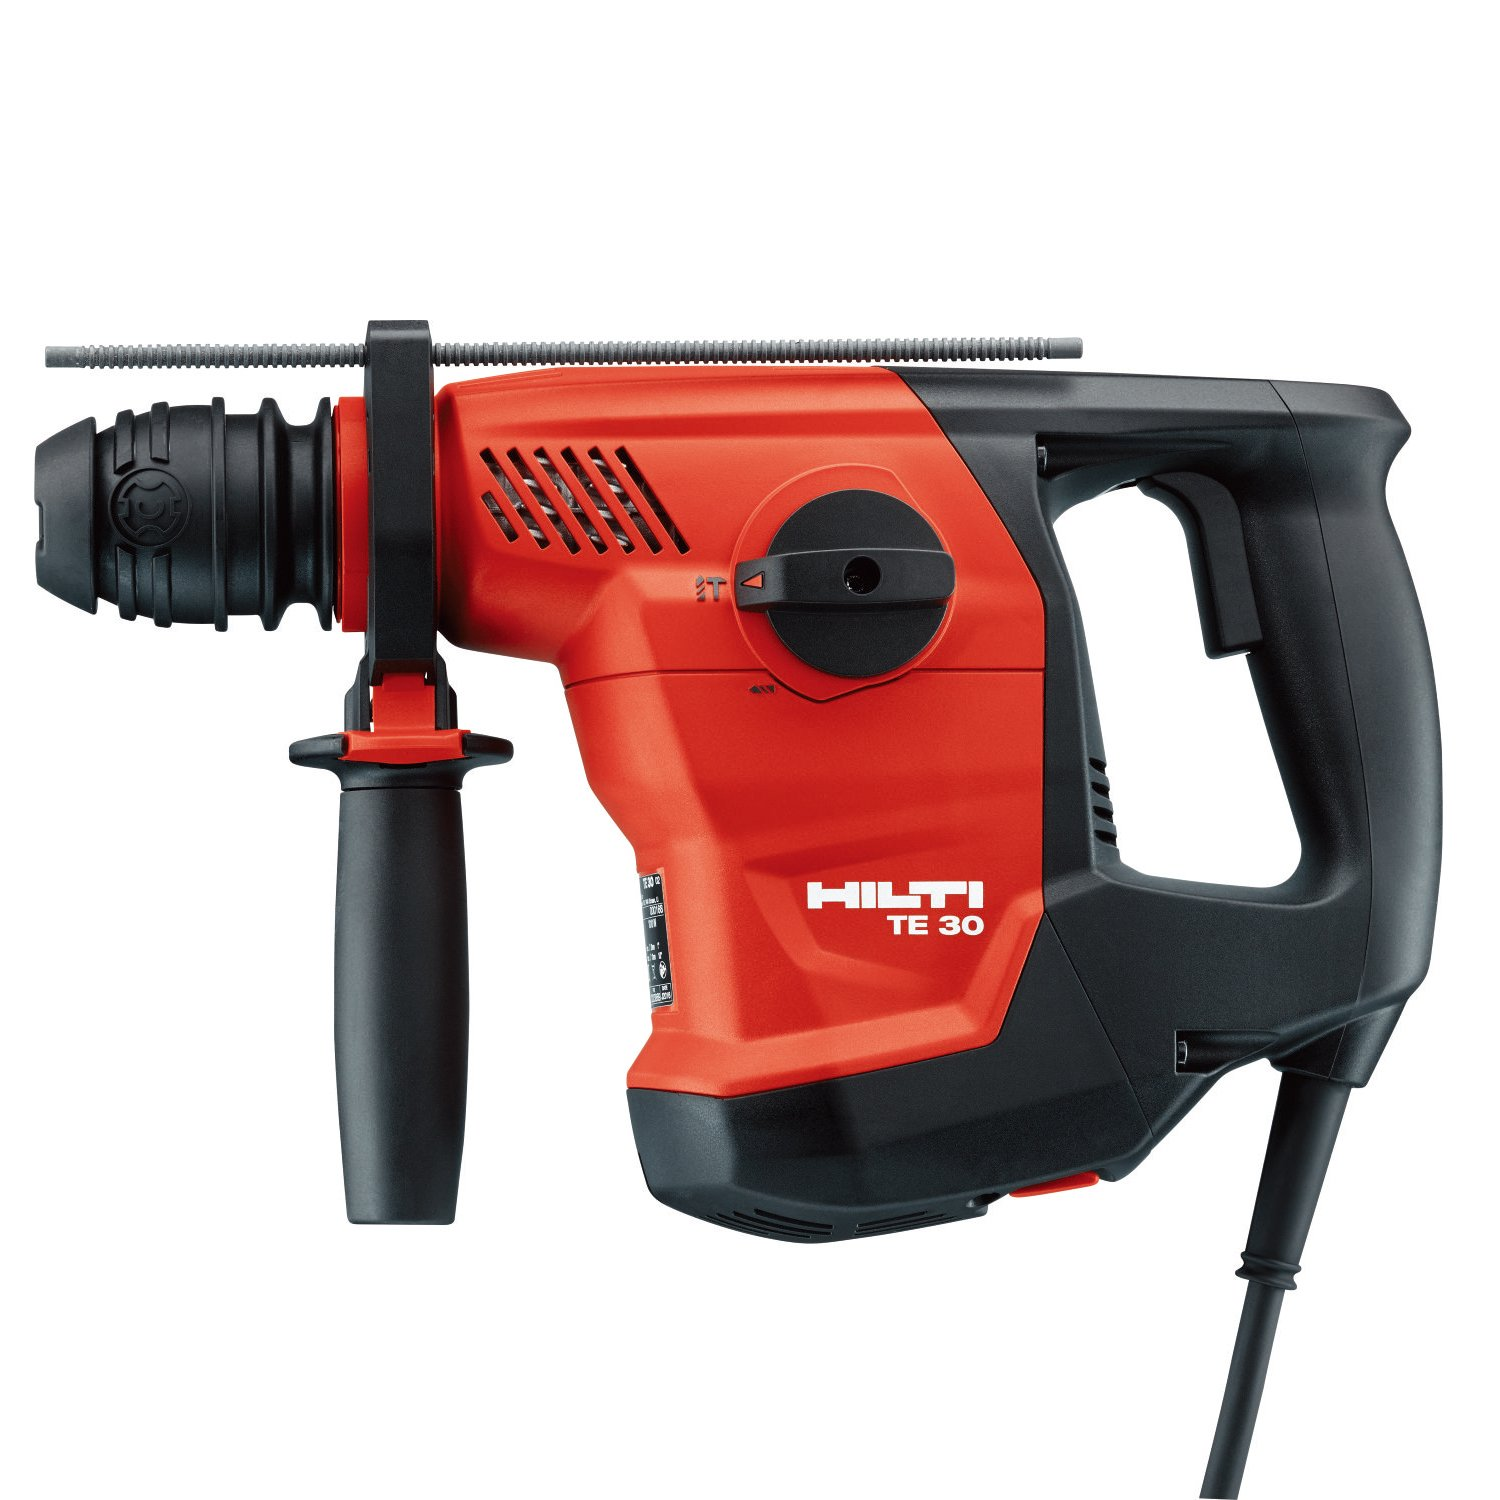 Large Electric Hammer Drill